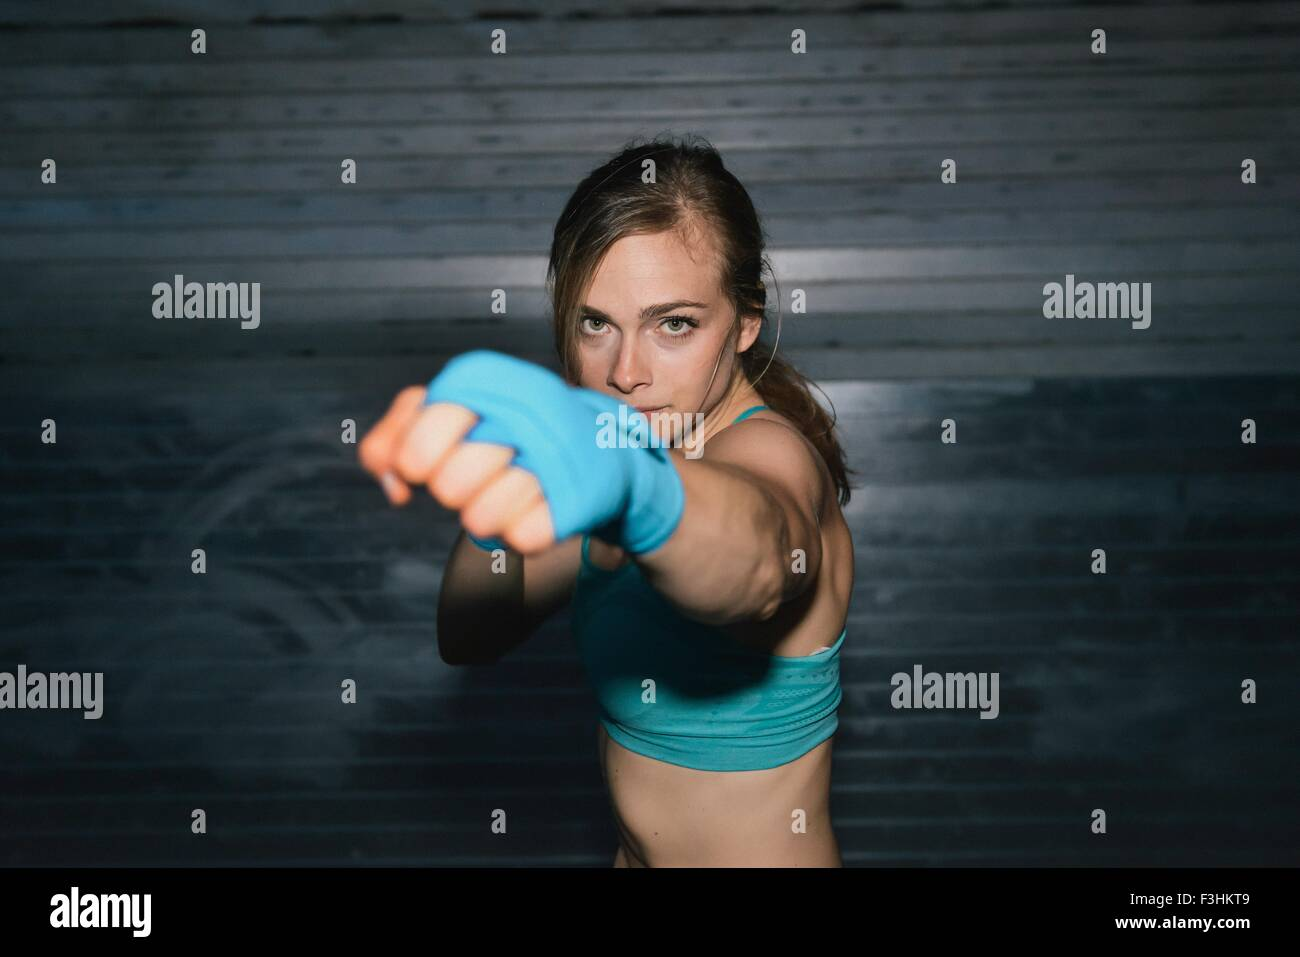 Young woman, working out, boxing, outdoors, at night - Stock Image